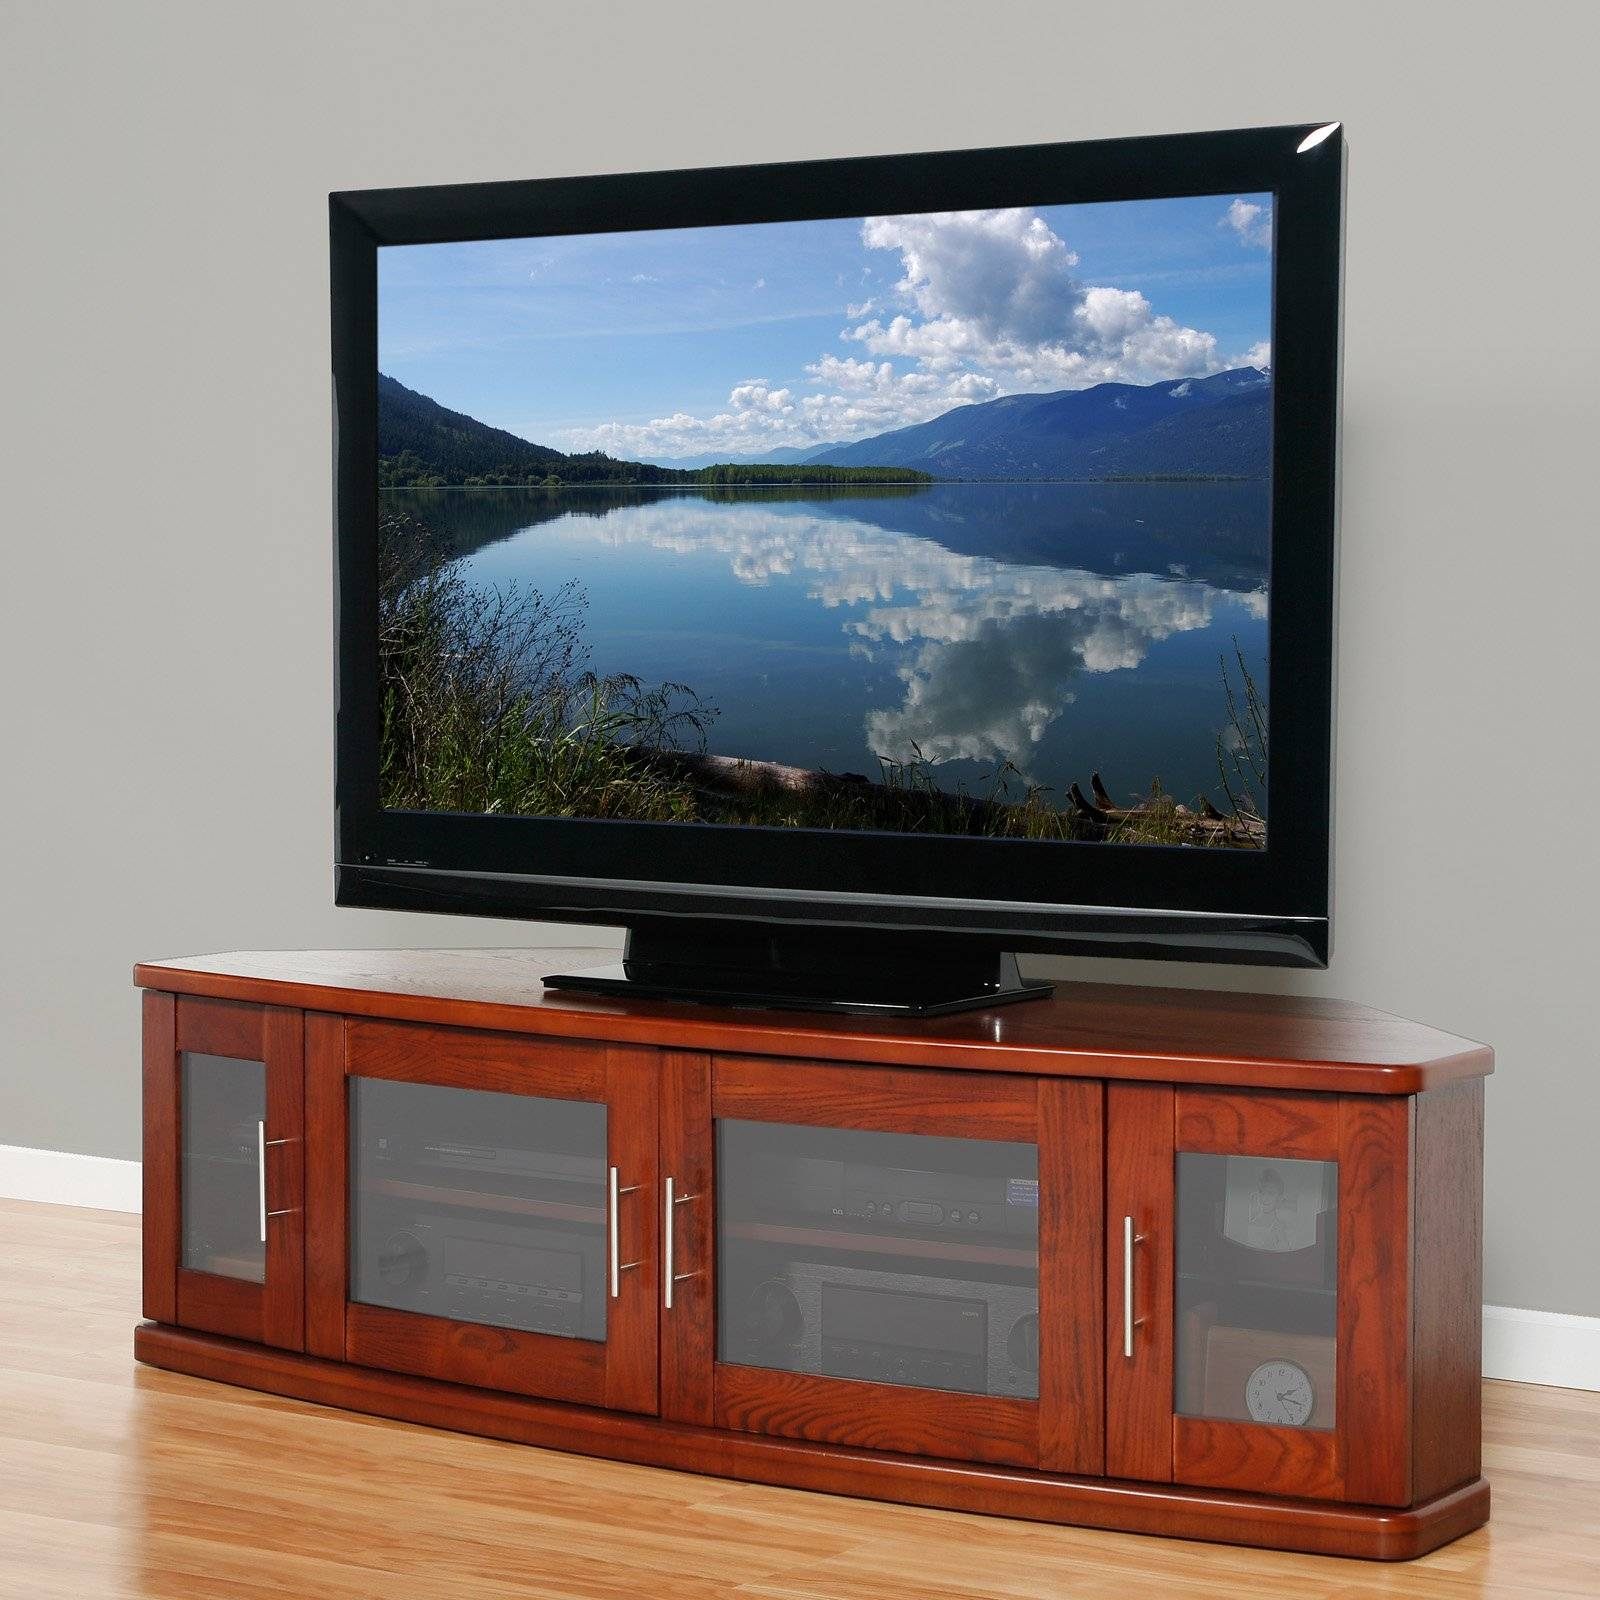 Plateau Newport 62 Inch Corner Tv Stand In Walnut | Hayneedle Within Glass Fronted Tv Cabinet (View 14 of 15)